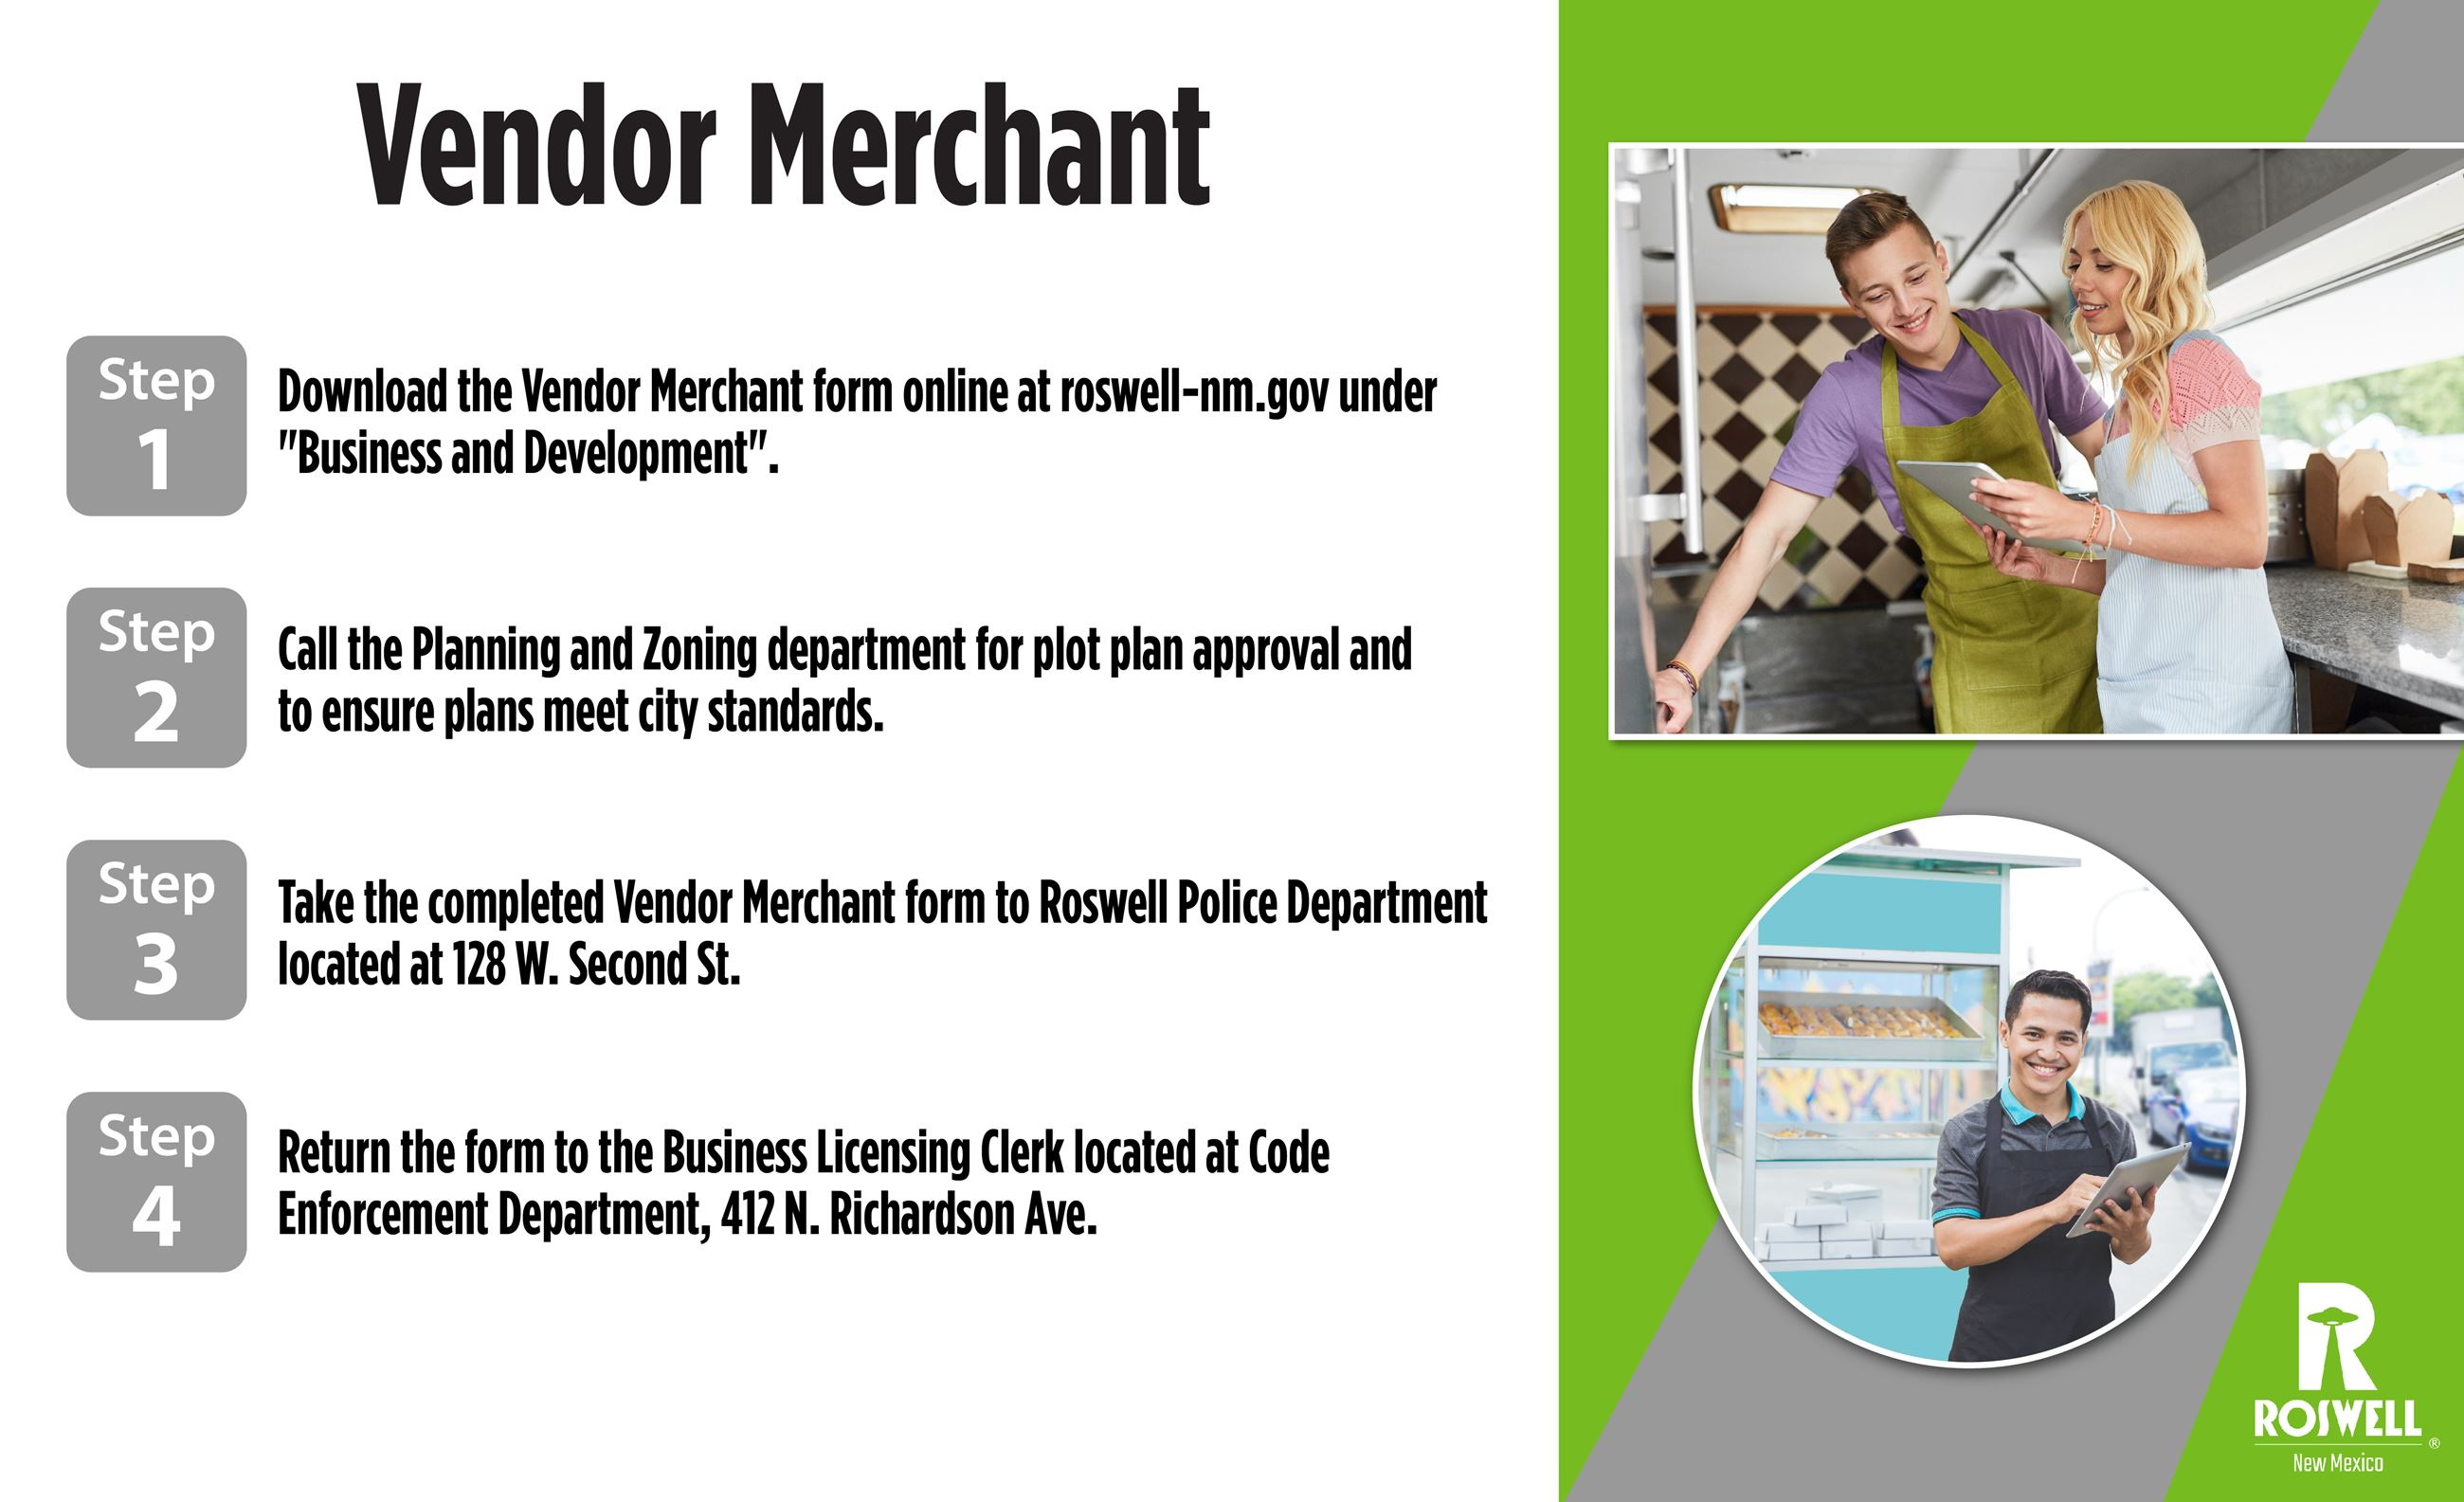 Info graphic with steps to obtain a Vendor Merchant License